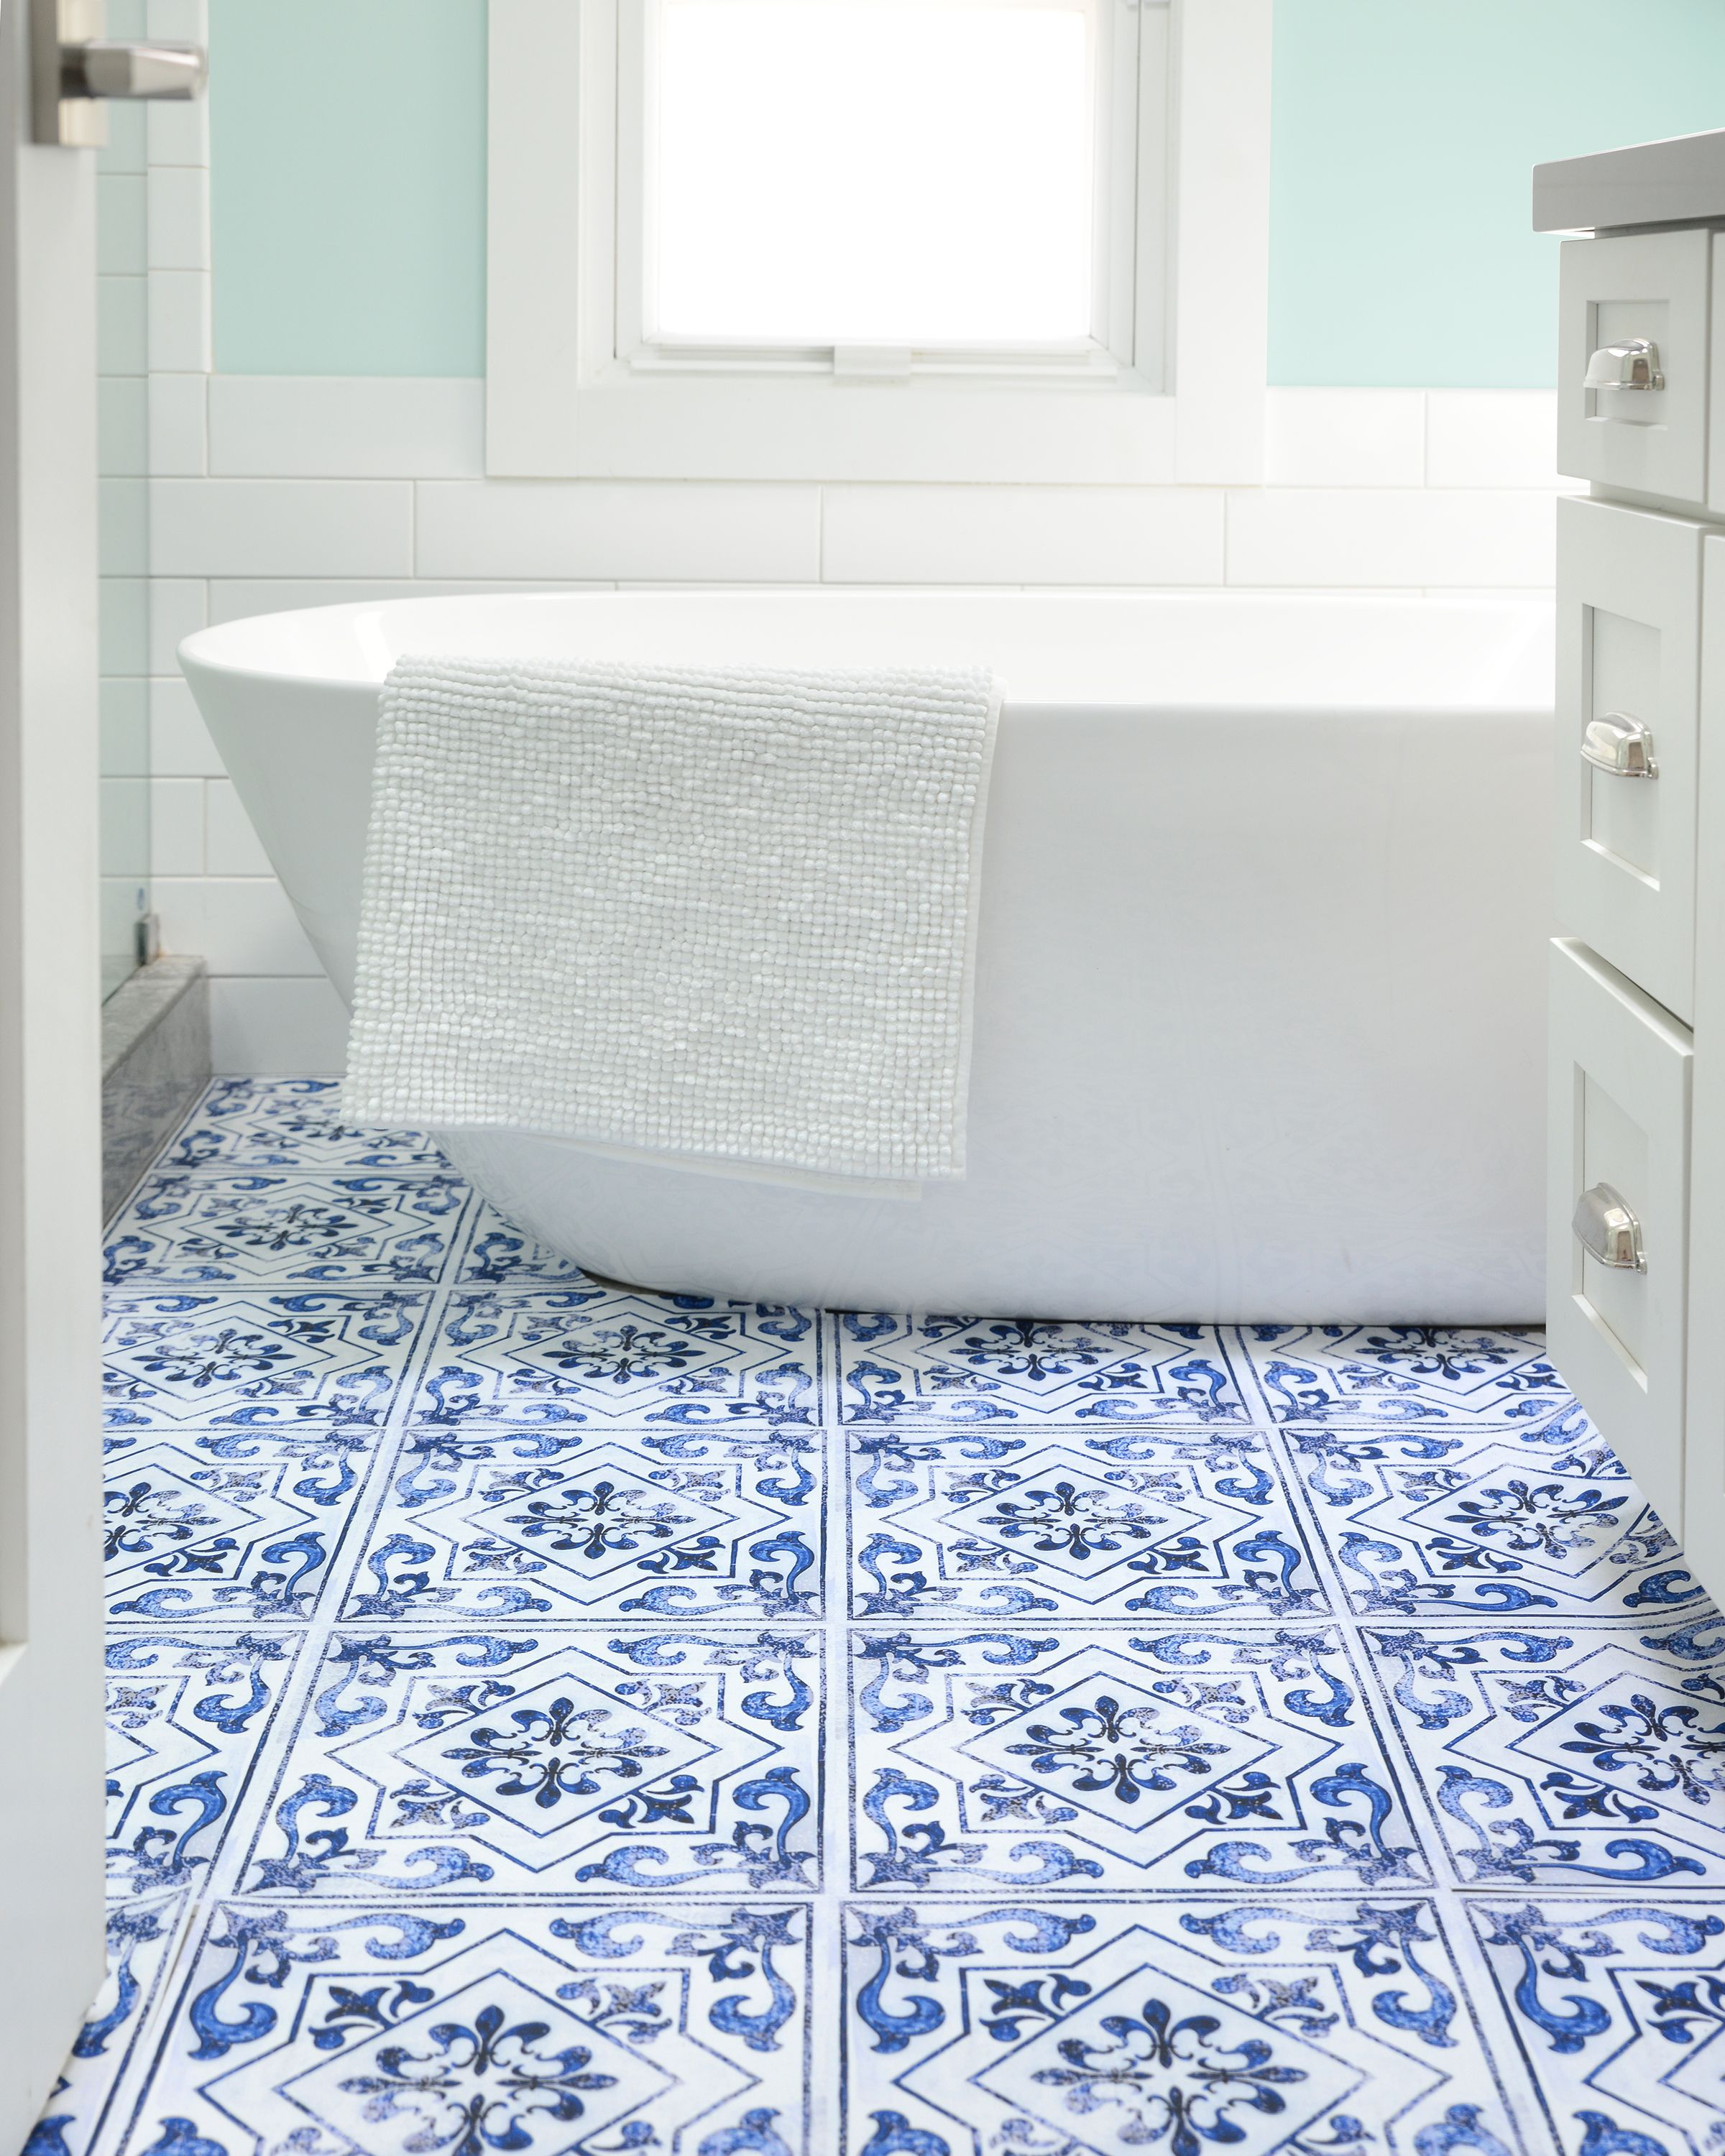 After The Success Of Our Blue Moroccan Applique We Wanted To